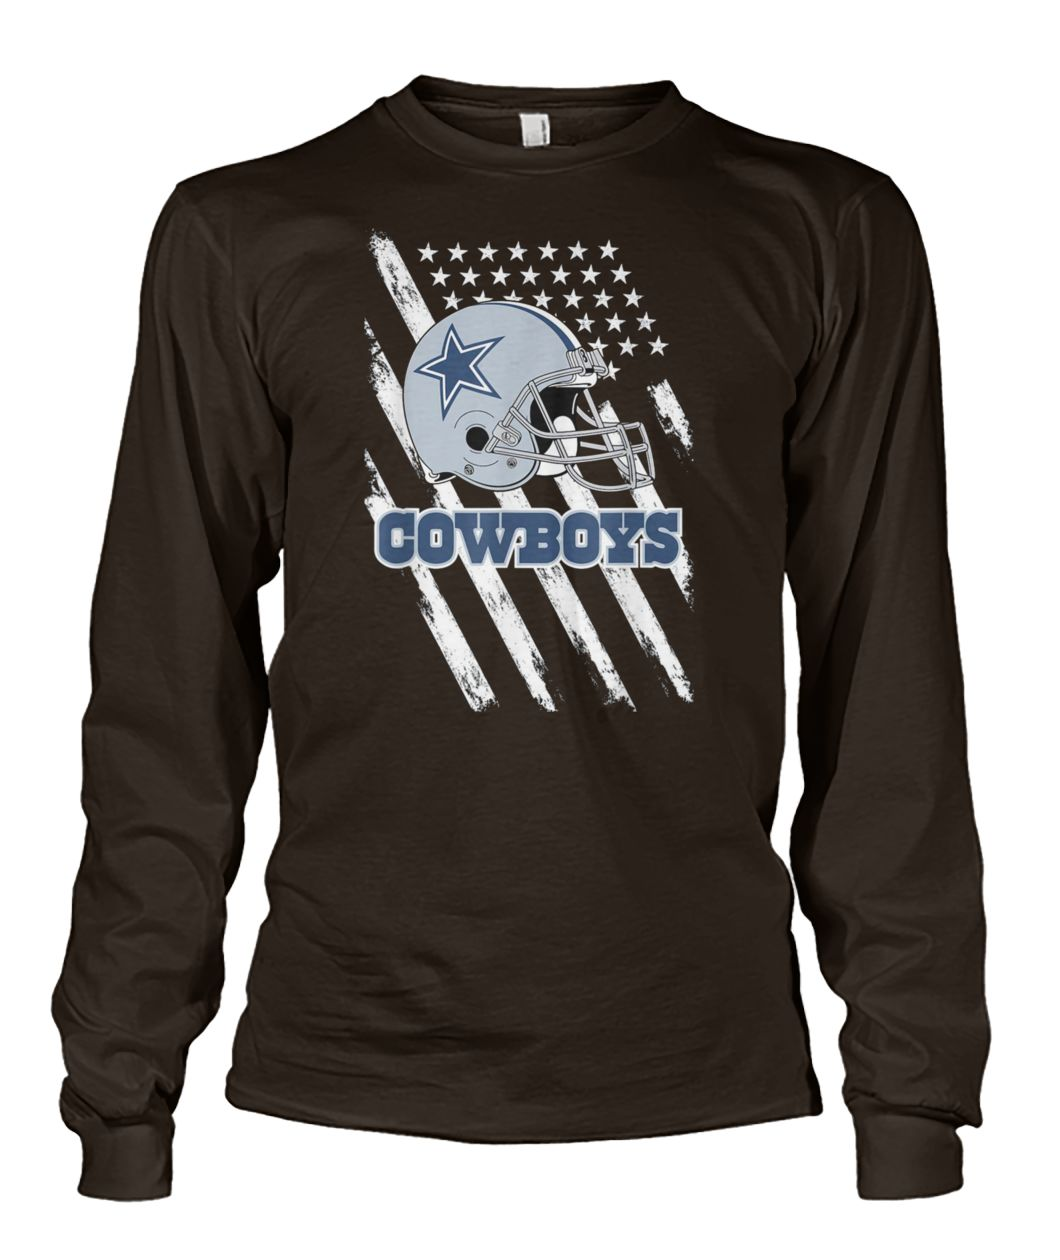 Cowboys football dallas fans USA flag unisex long sleeve